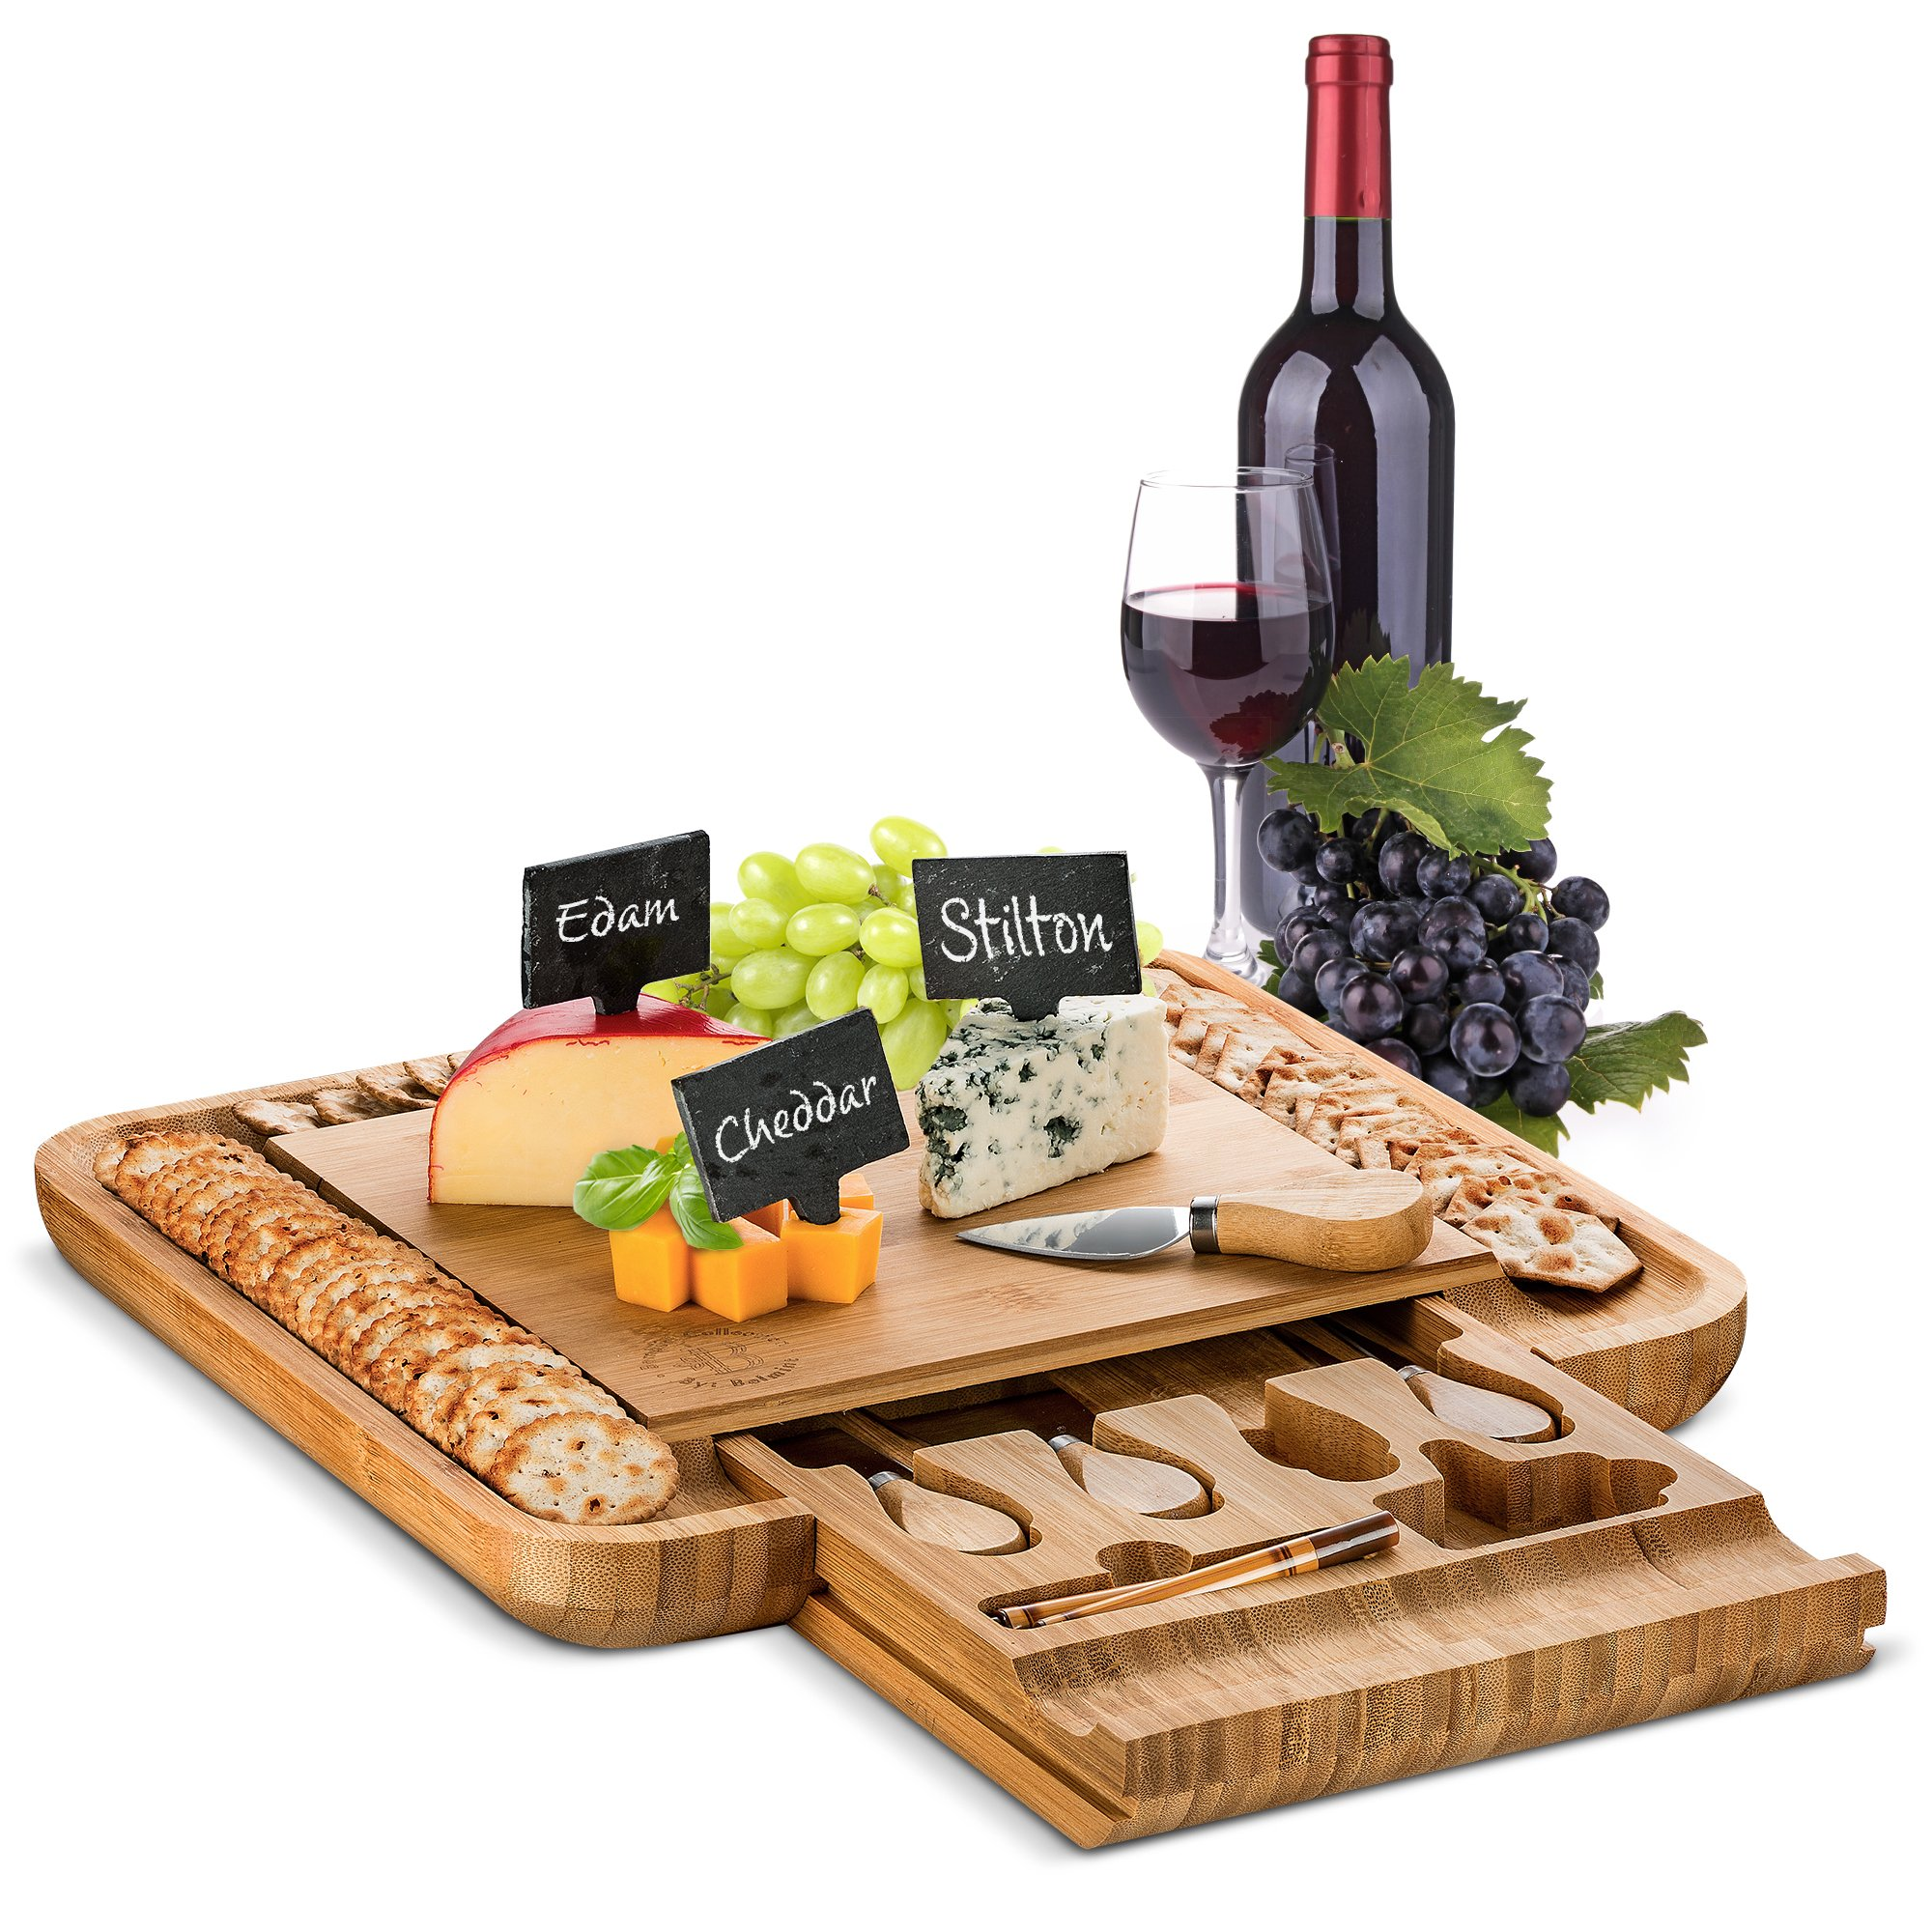 Bamboo Cheese Board with Cutlery Set, Wood Charcuterie Platter and Serving Meat Board with Slide-Out Drawer with 4 Stainless Steel Knife and Server Set - Includes 3 Label, Chalk and Slate. By Bambusi